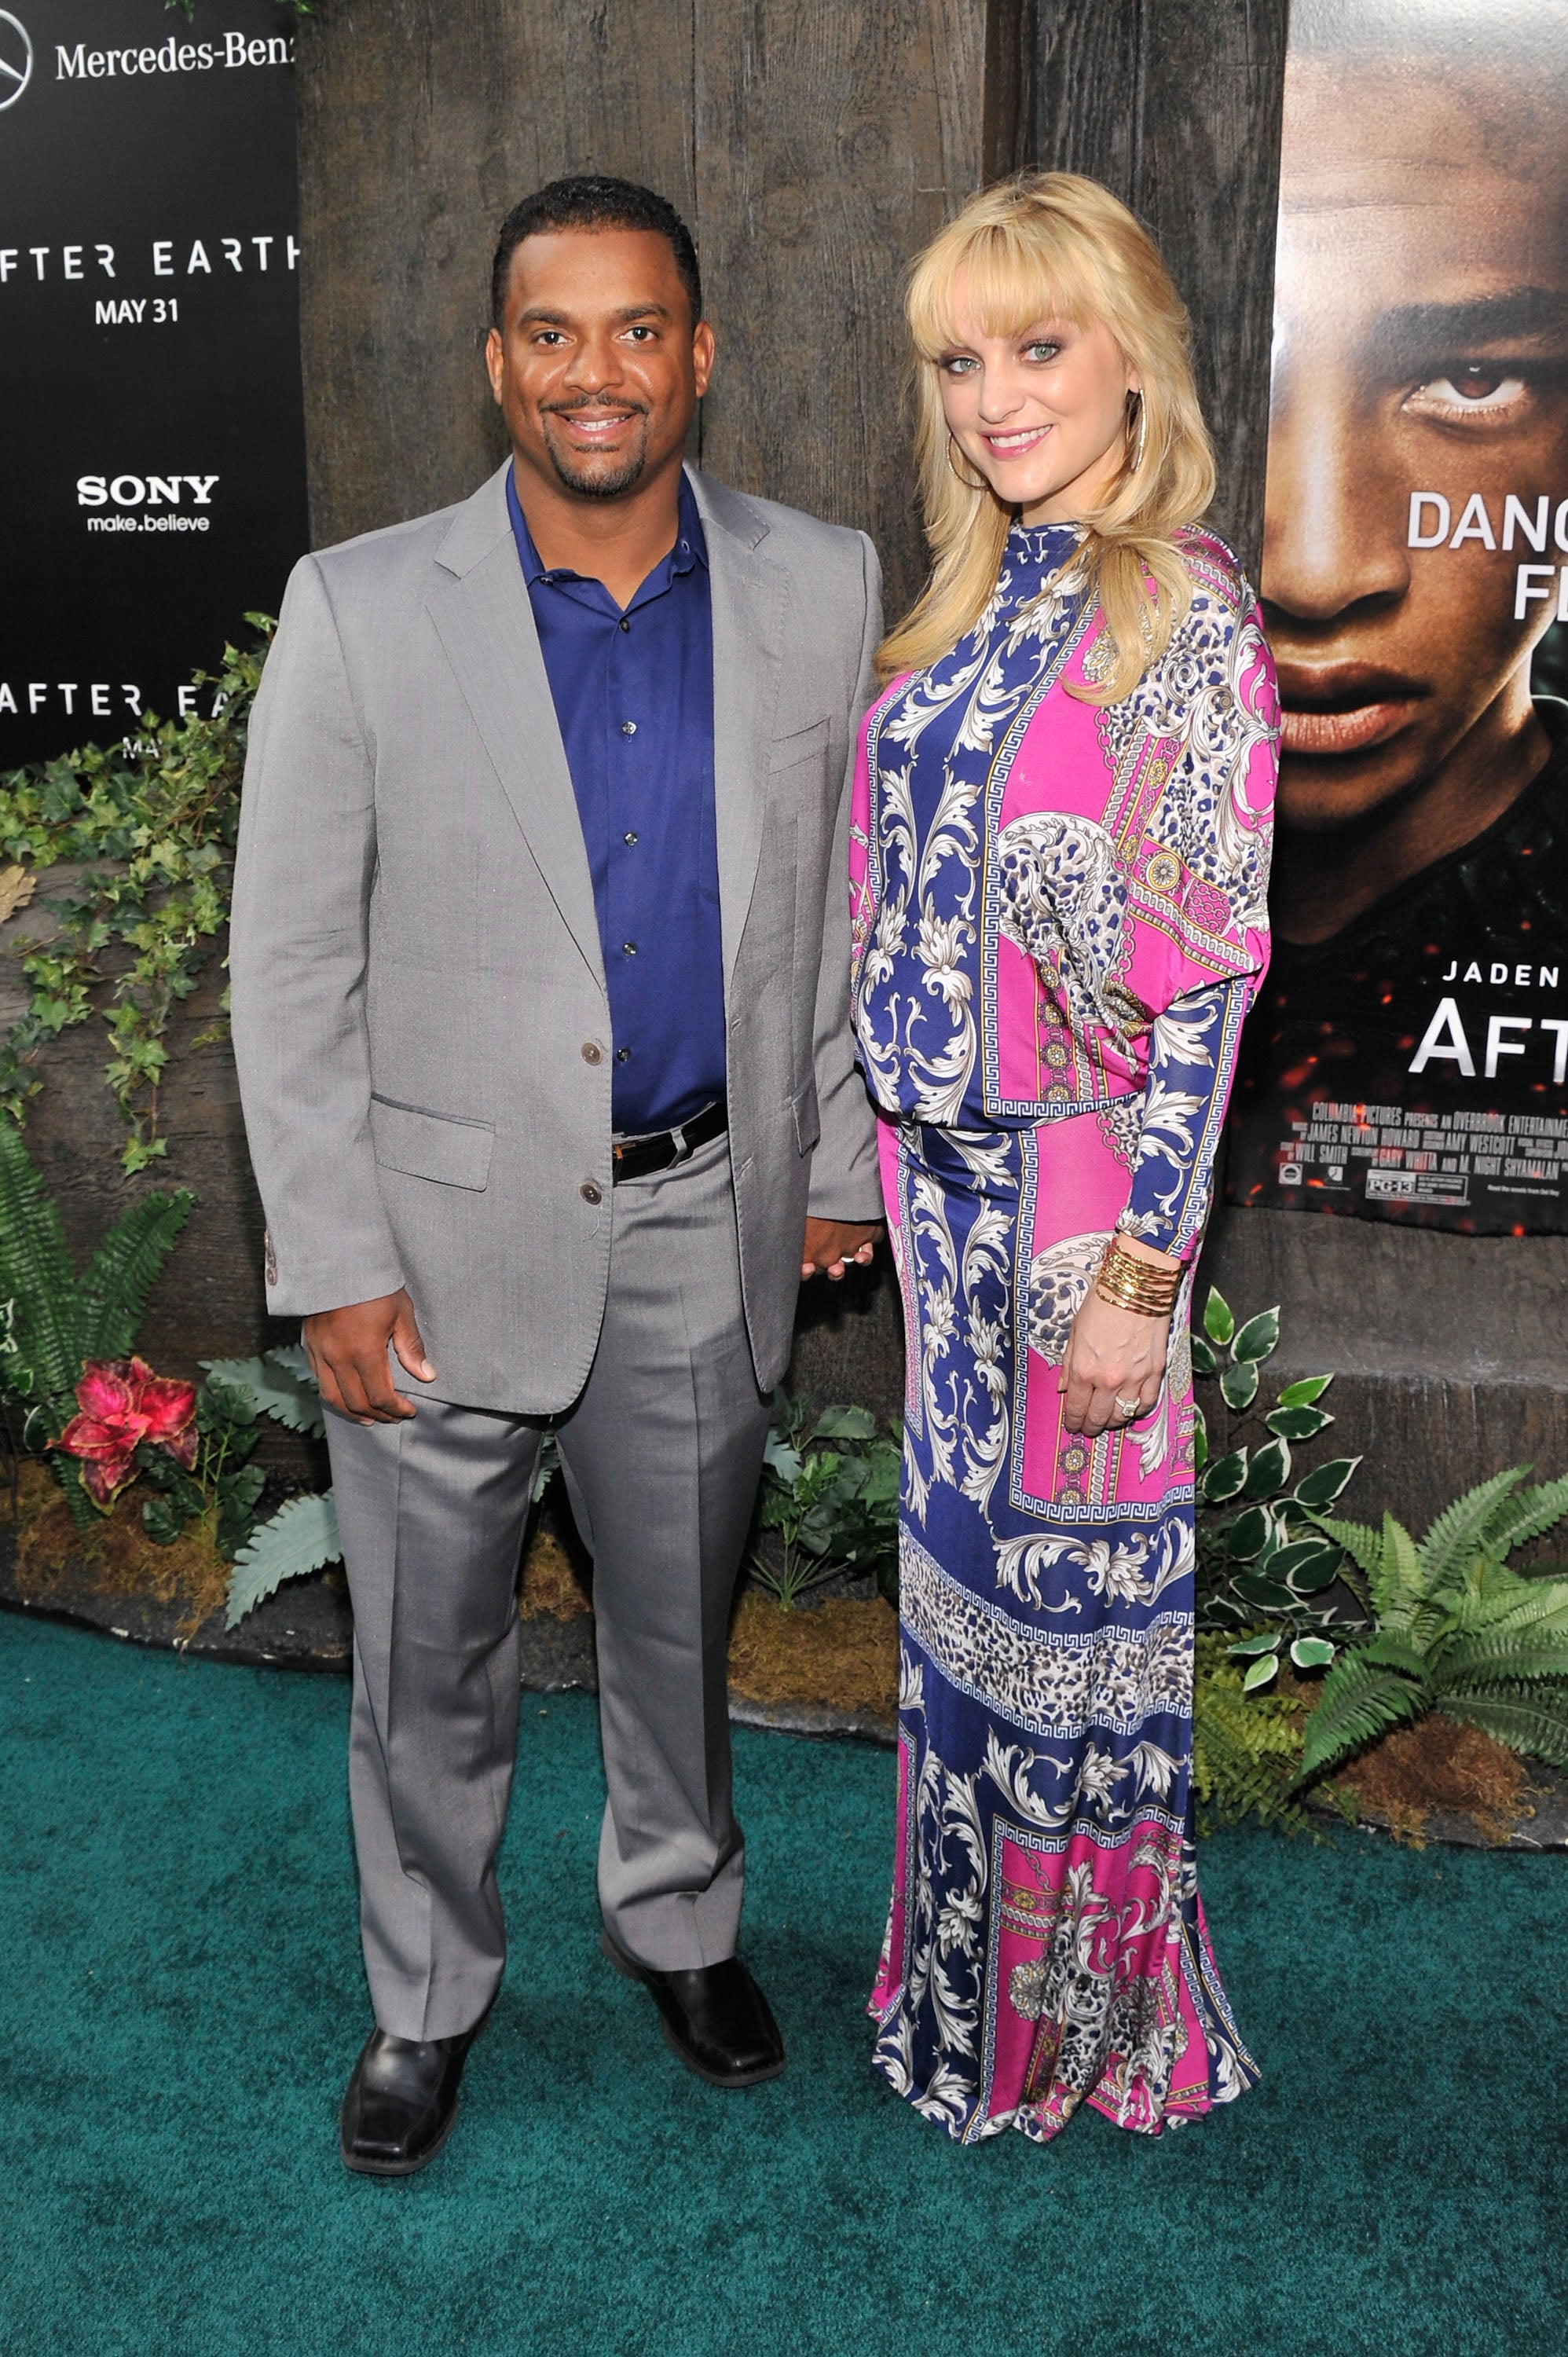 Alfonso Ribeiro And Angela Unkrich After Earth Nyc Premiere Celebrity Pictures Popsugar Celebrity Australia Photo 13 Angela ribeiro is a 39 year old american writer. alfonso ribeiro and angela unkrich